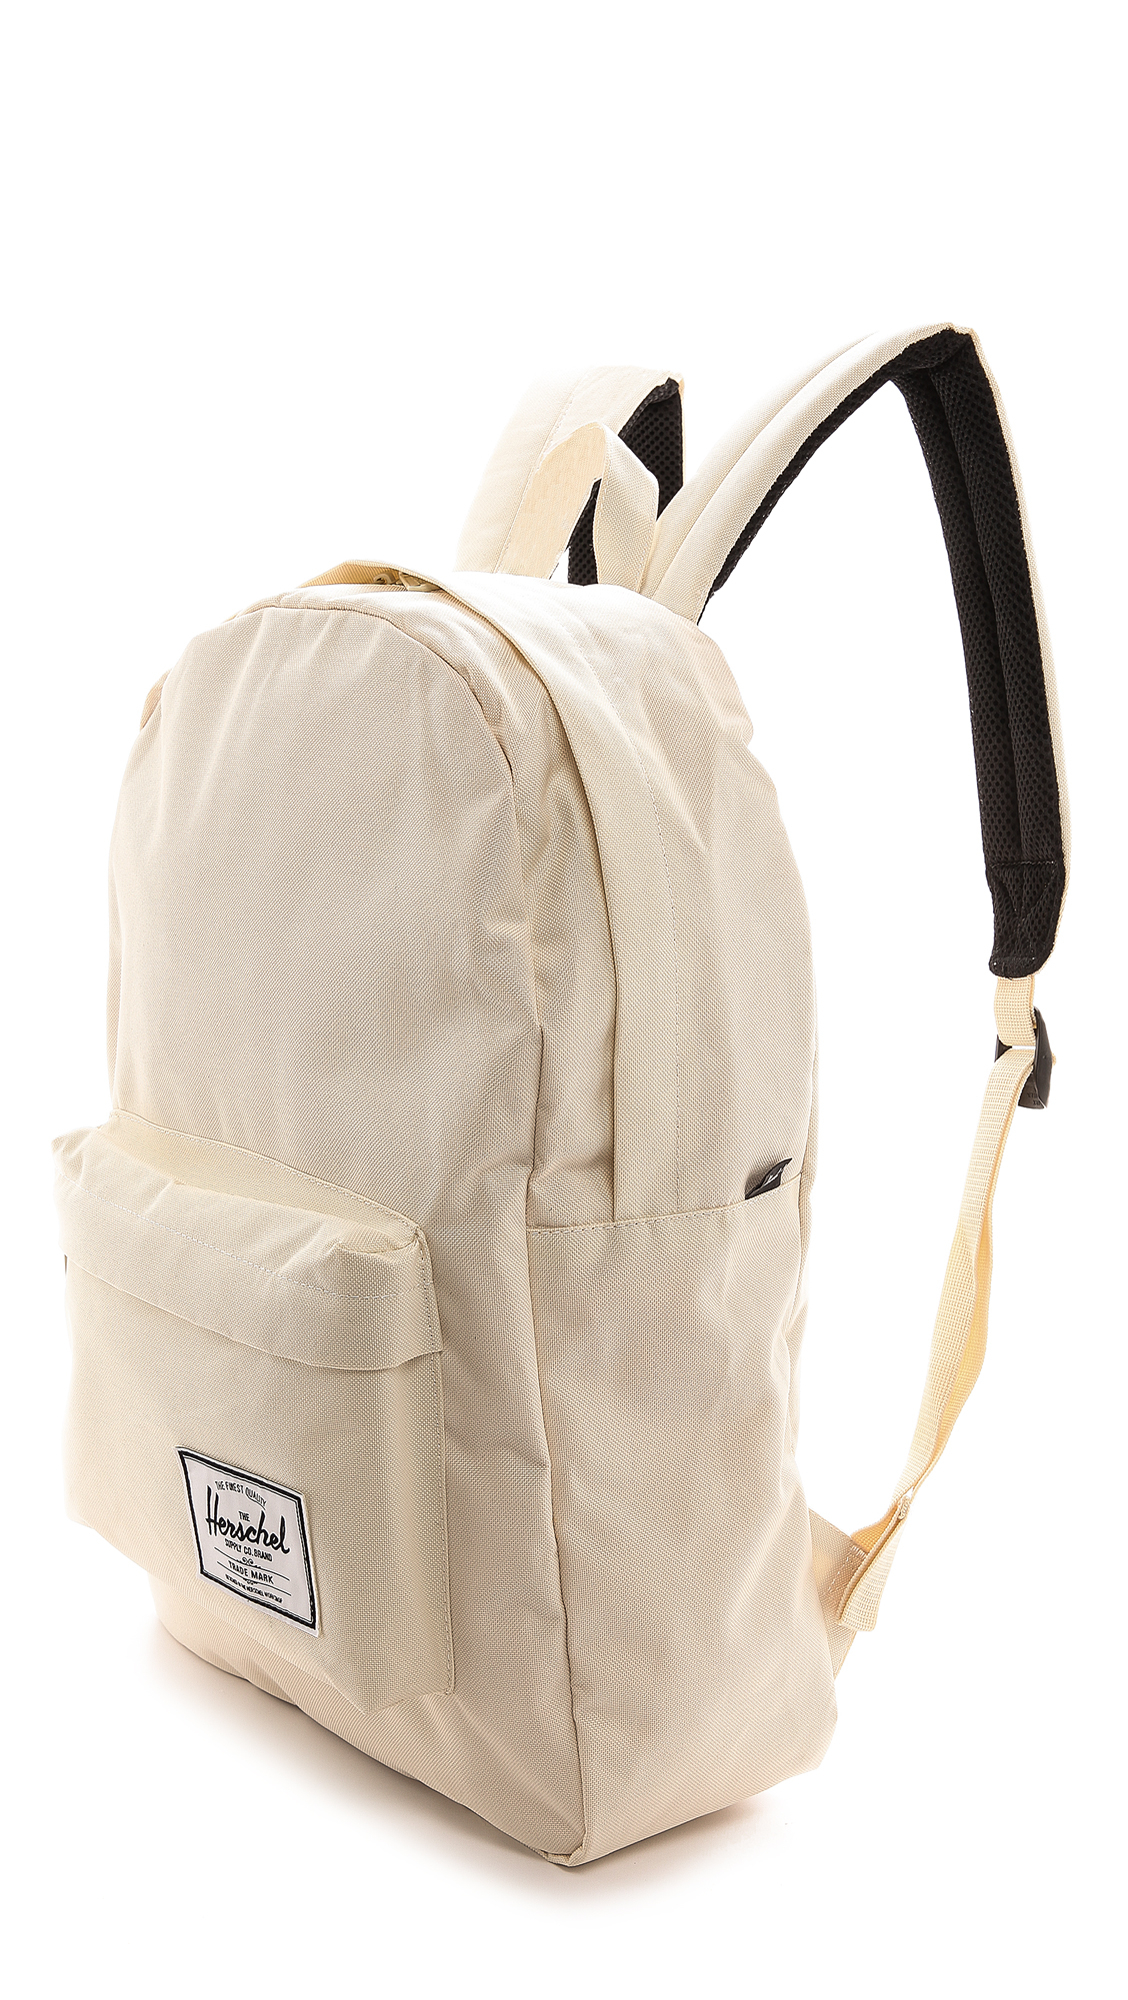 herschel supply co classic backpack in natural for men lyst. Black Bedroom Furniture Sets. Home Design Ideas